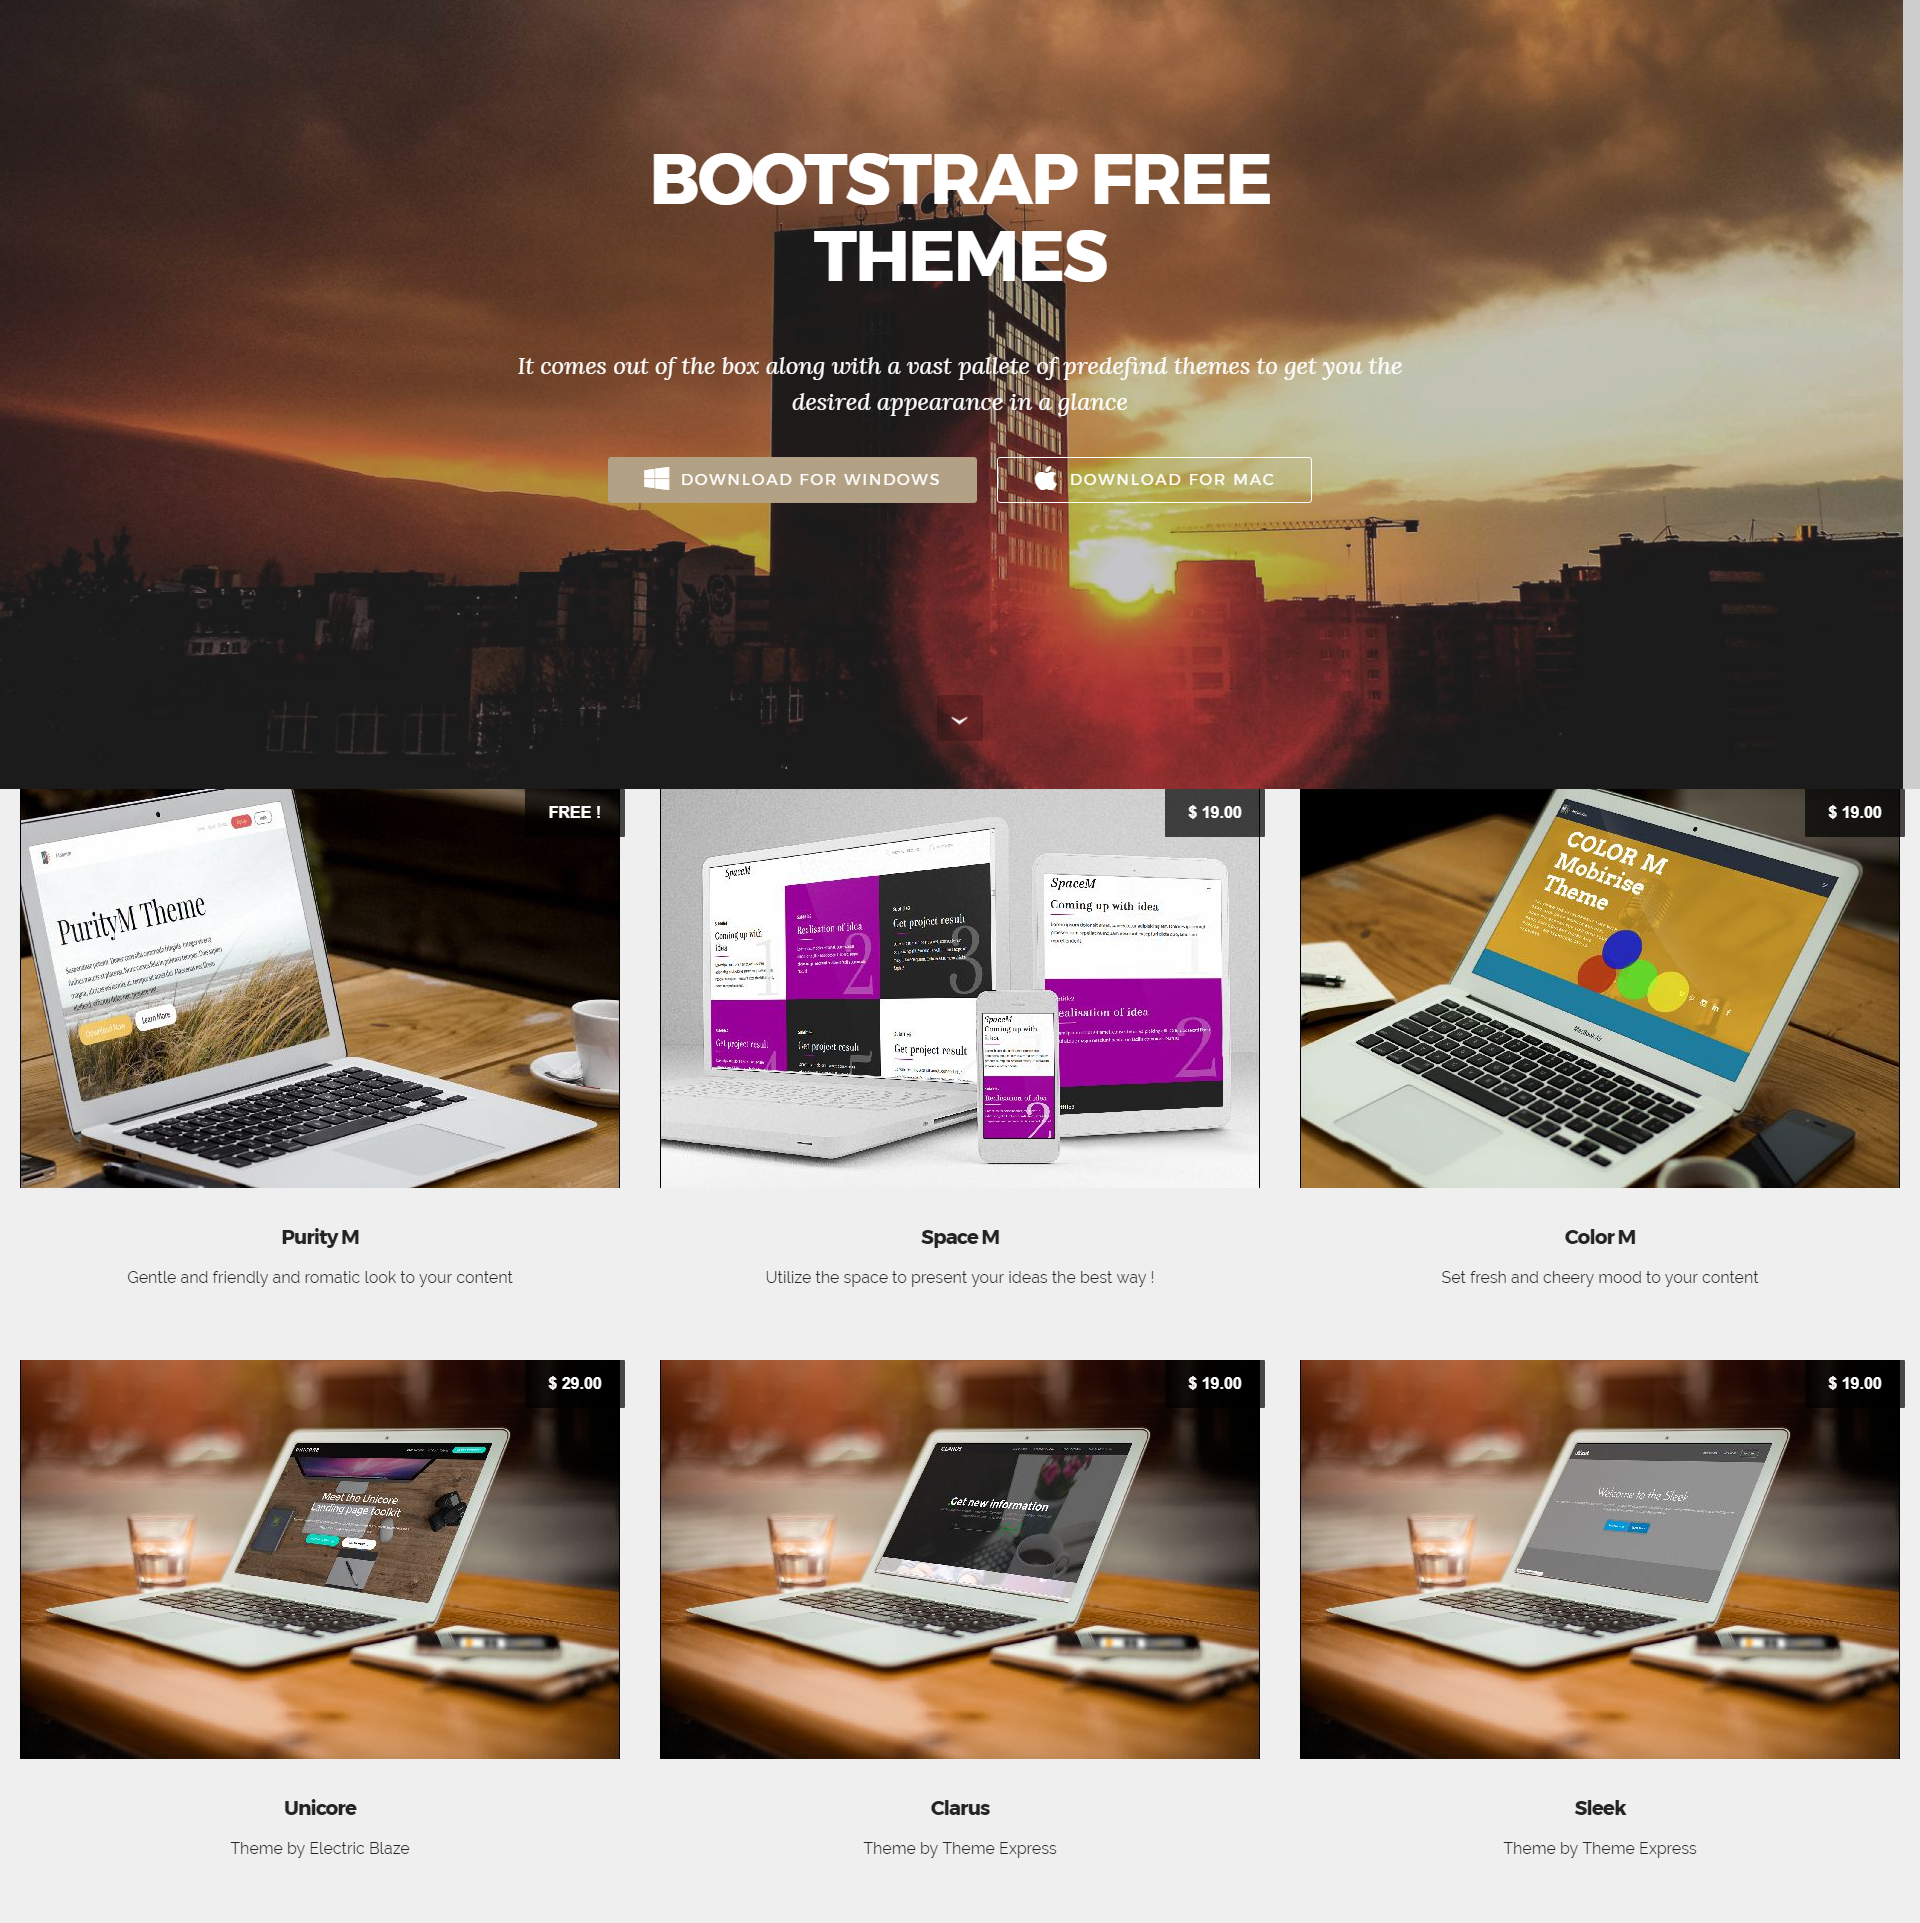 Free Bootstrap Mobile-friendly Templates